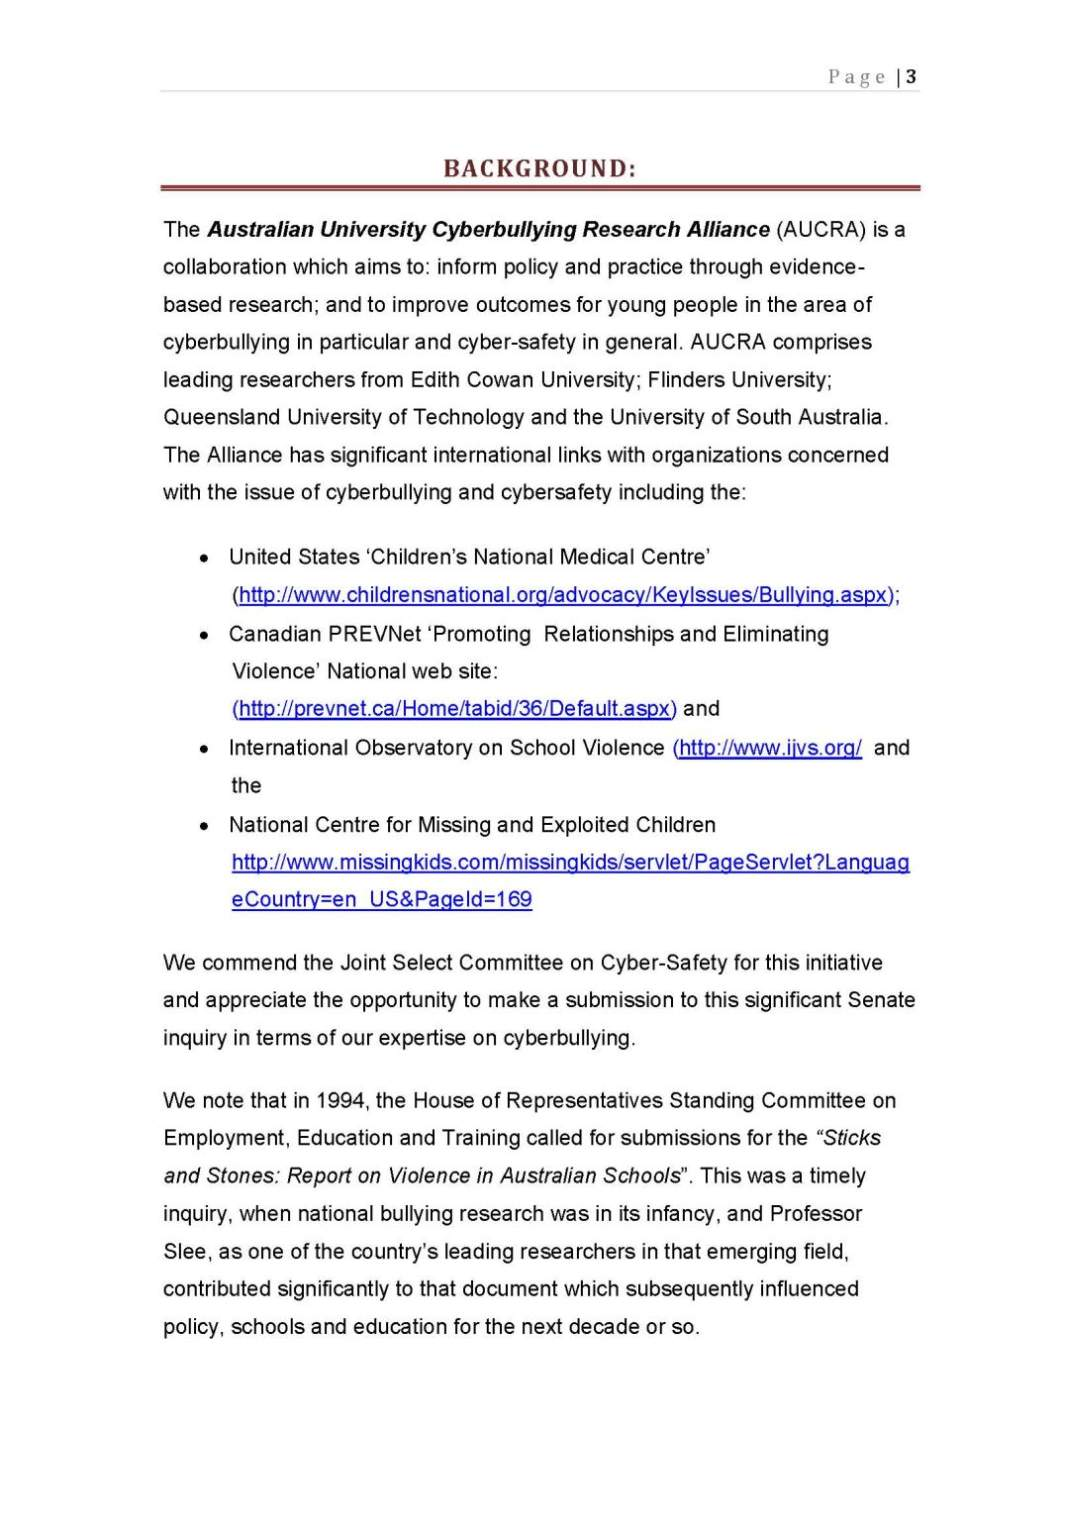 high school bullying research paper How to write a research paper on bullying: fresh ideas bullying is a huge issue in our society it starts in elementary school and continues for some throughout our.